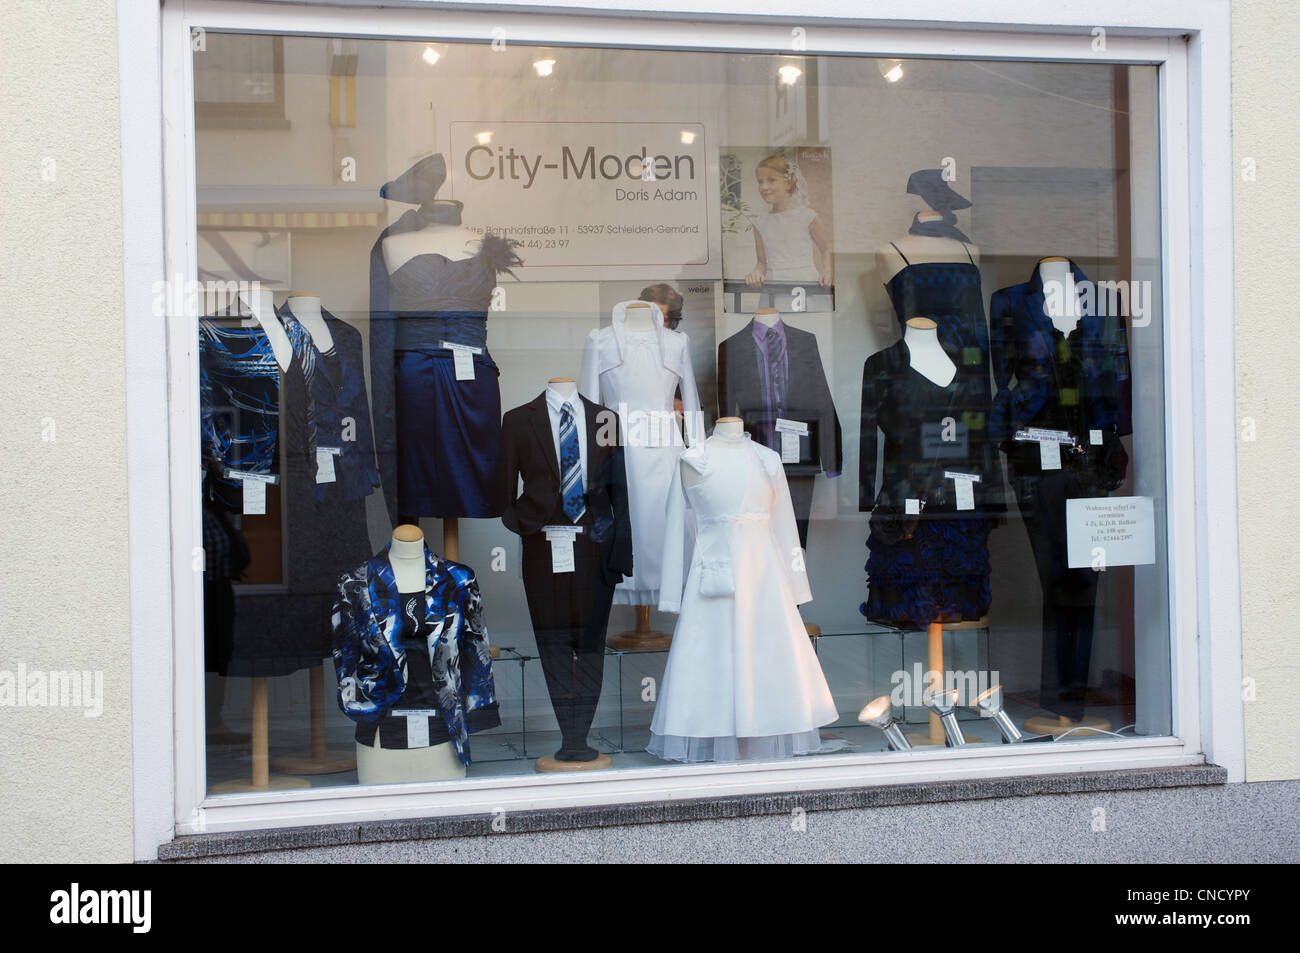 Formal wear clothes shop Germany - Stock Image